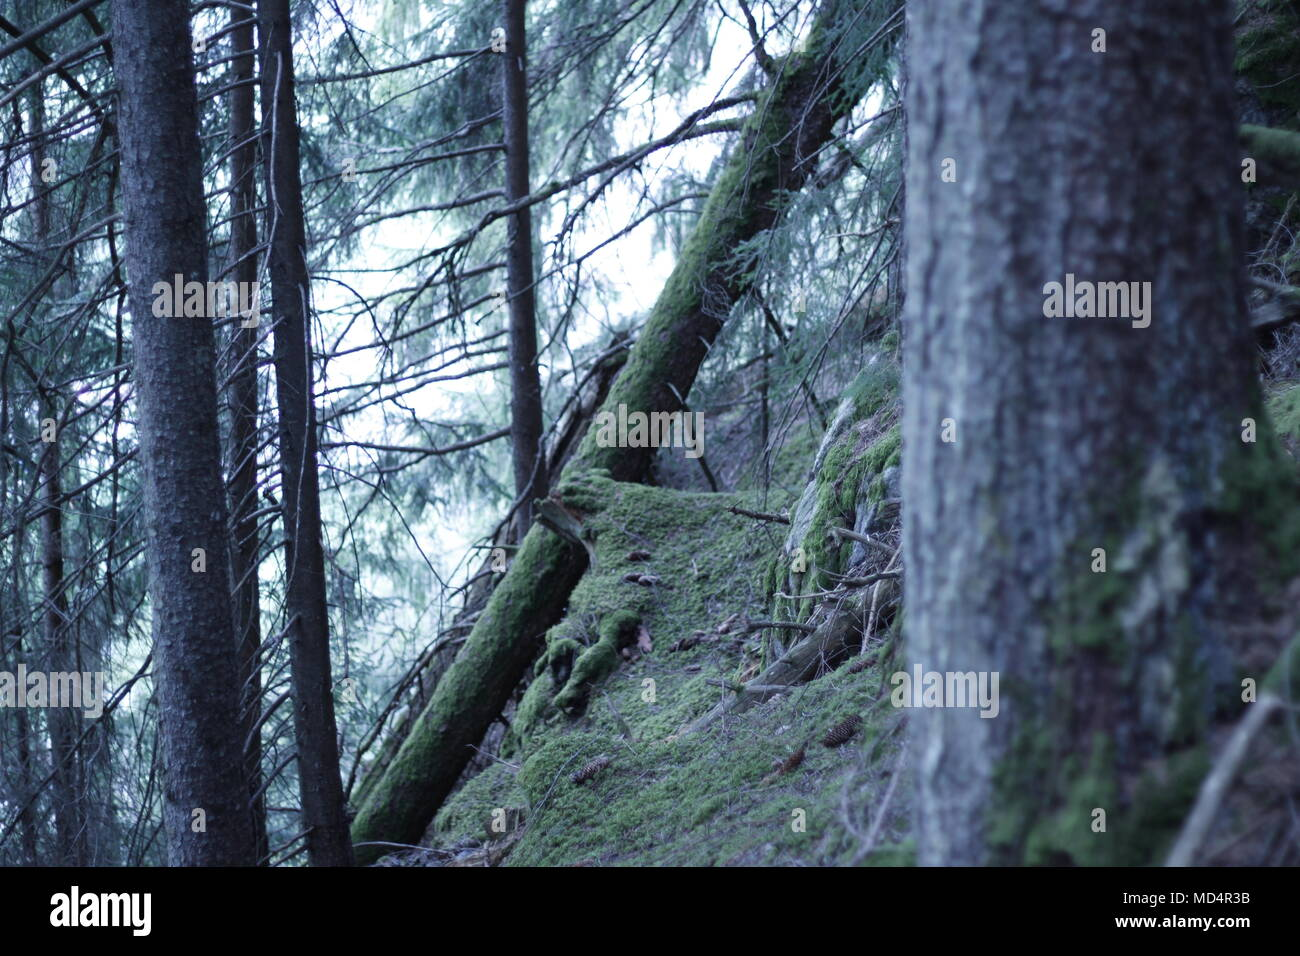 Hiking in Mayrhofen, Austria, forest with much moss and pines. Very green and beautiful forest enviroment. - Stock Image